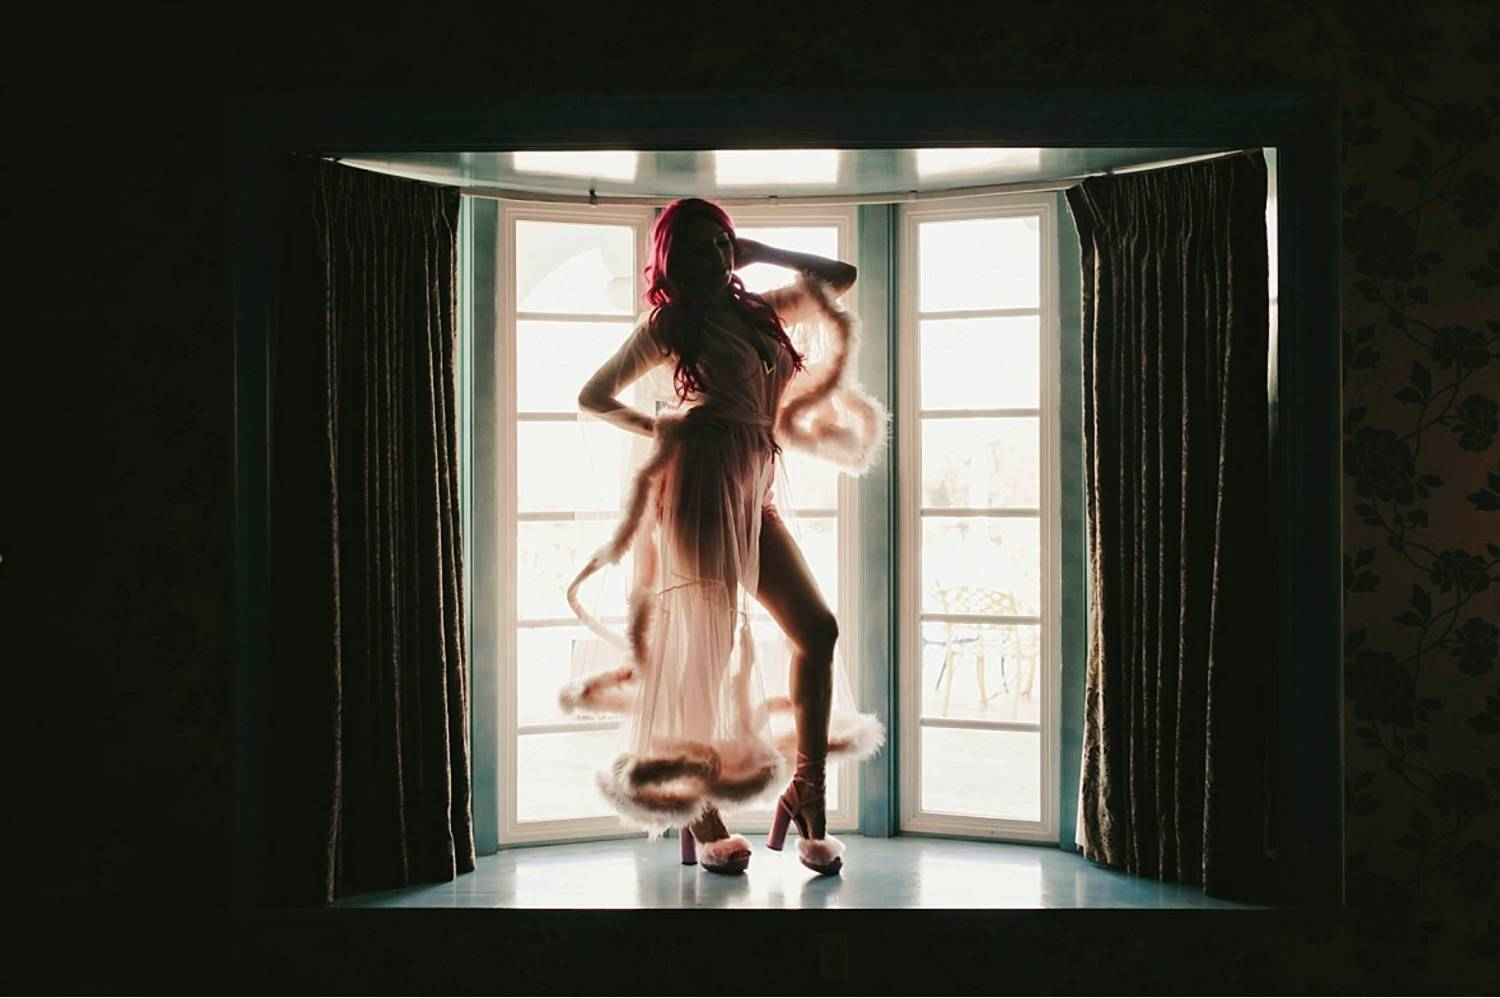 Photo: Michelle Roller's boudoir portrait of a pink-haired woman wearing a silk and fur robe as she stands on a platform before a large bay window.